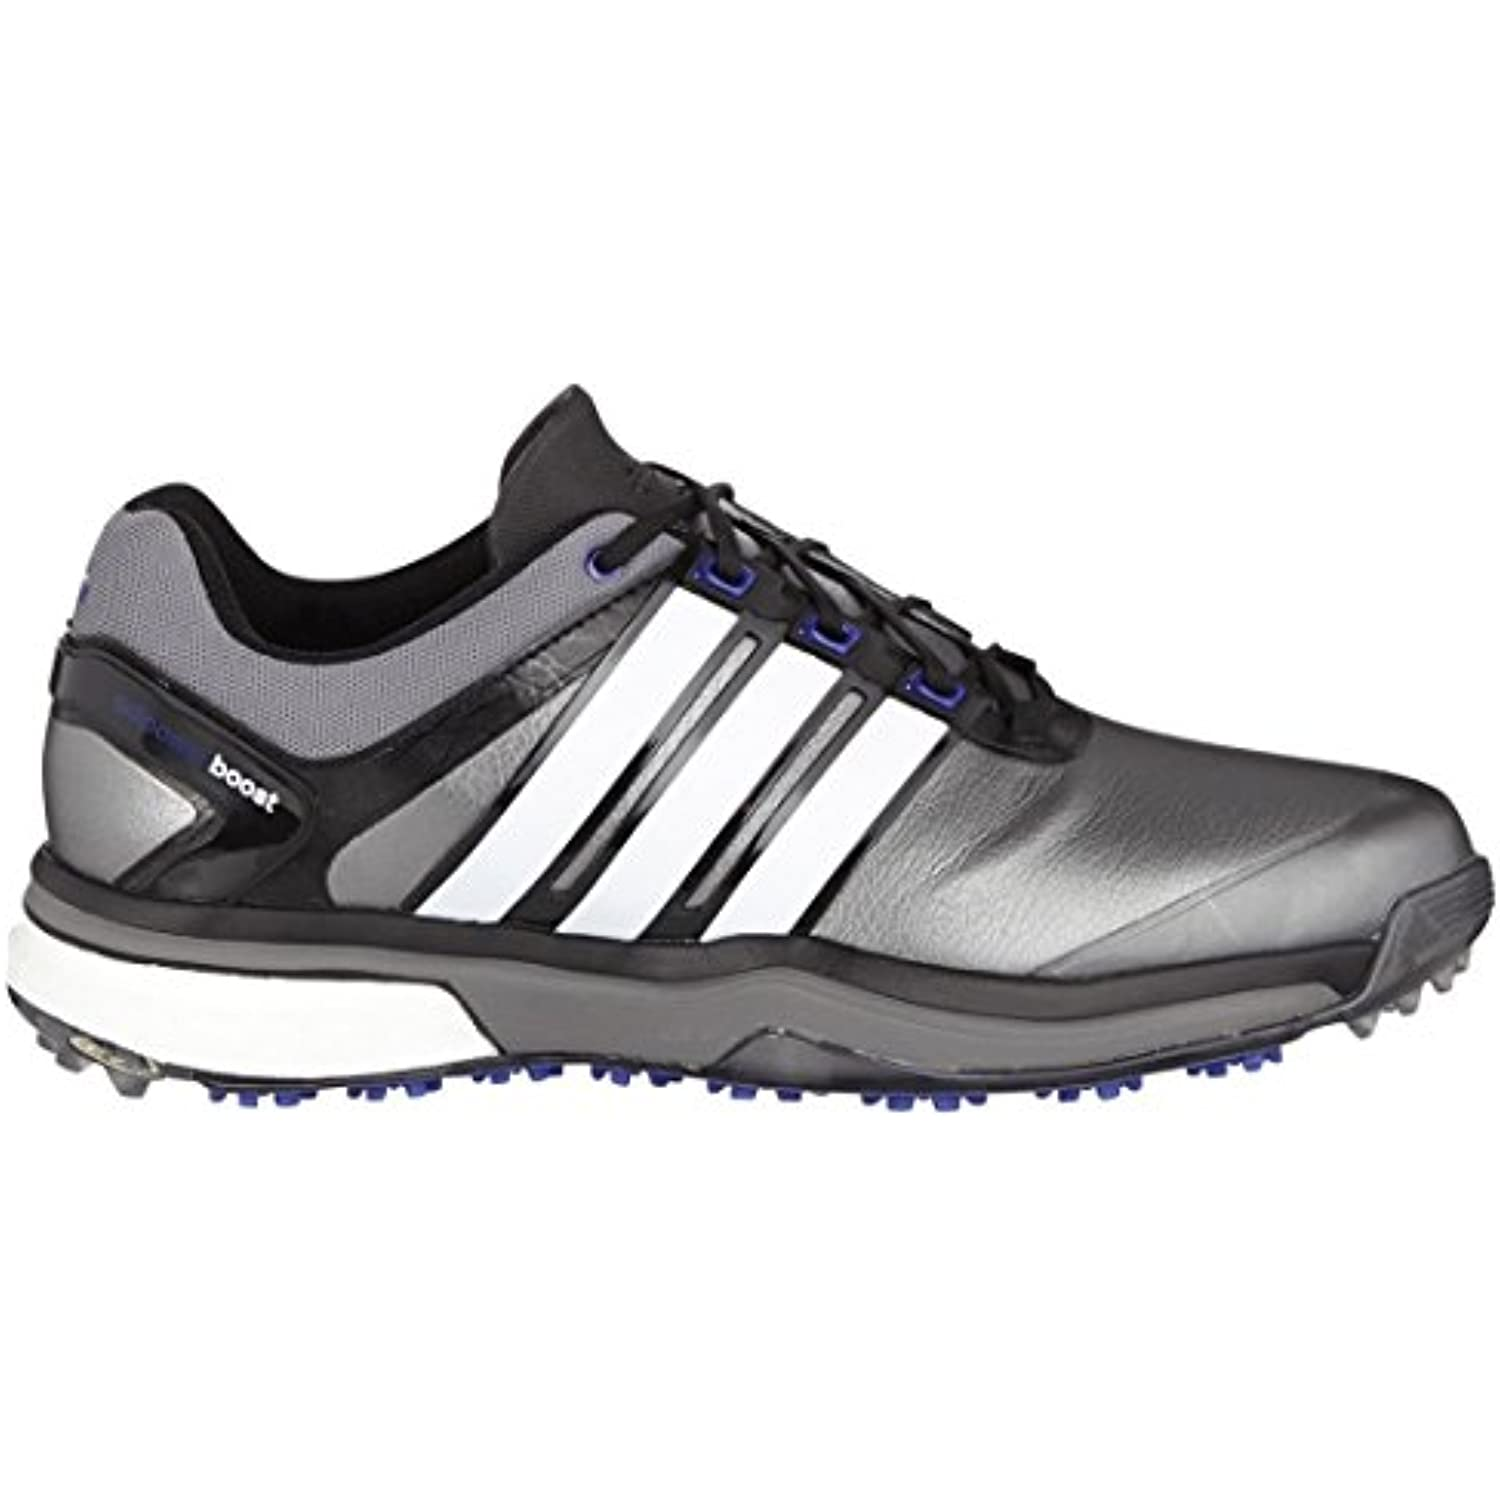 2015 2015 2015 Adidas Adipower Boost Hommes Golf chaussures imperméables - Large Montage - B00TIPPEZ4 - f91f85